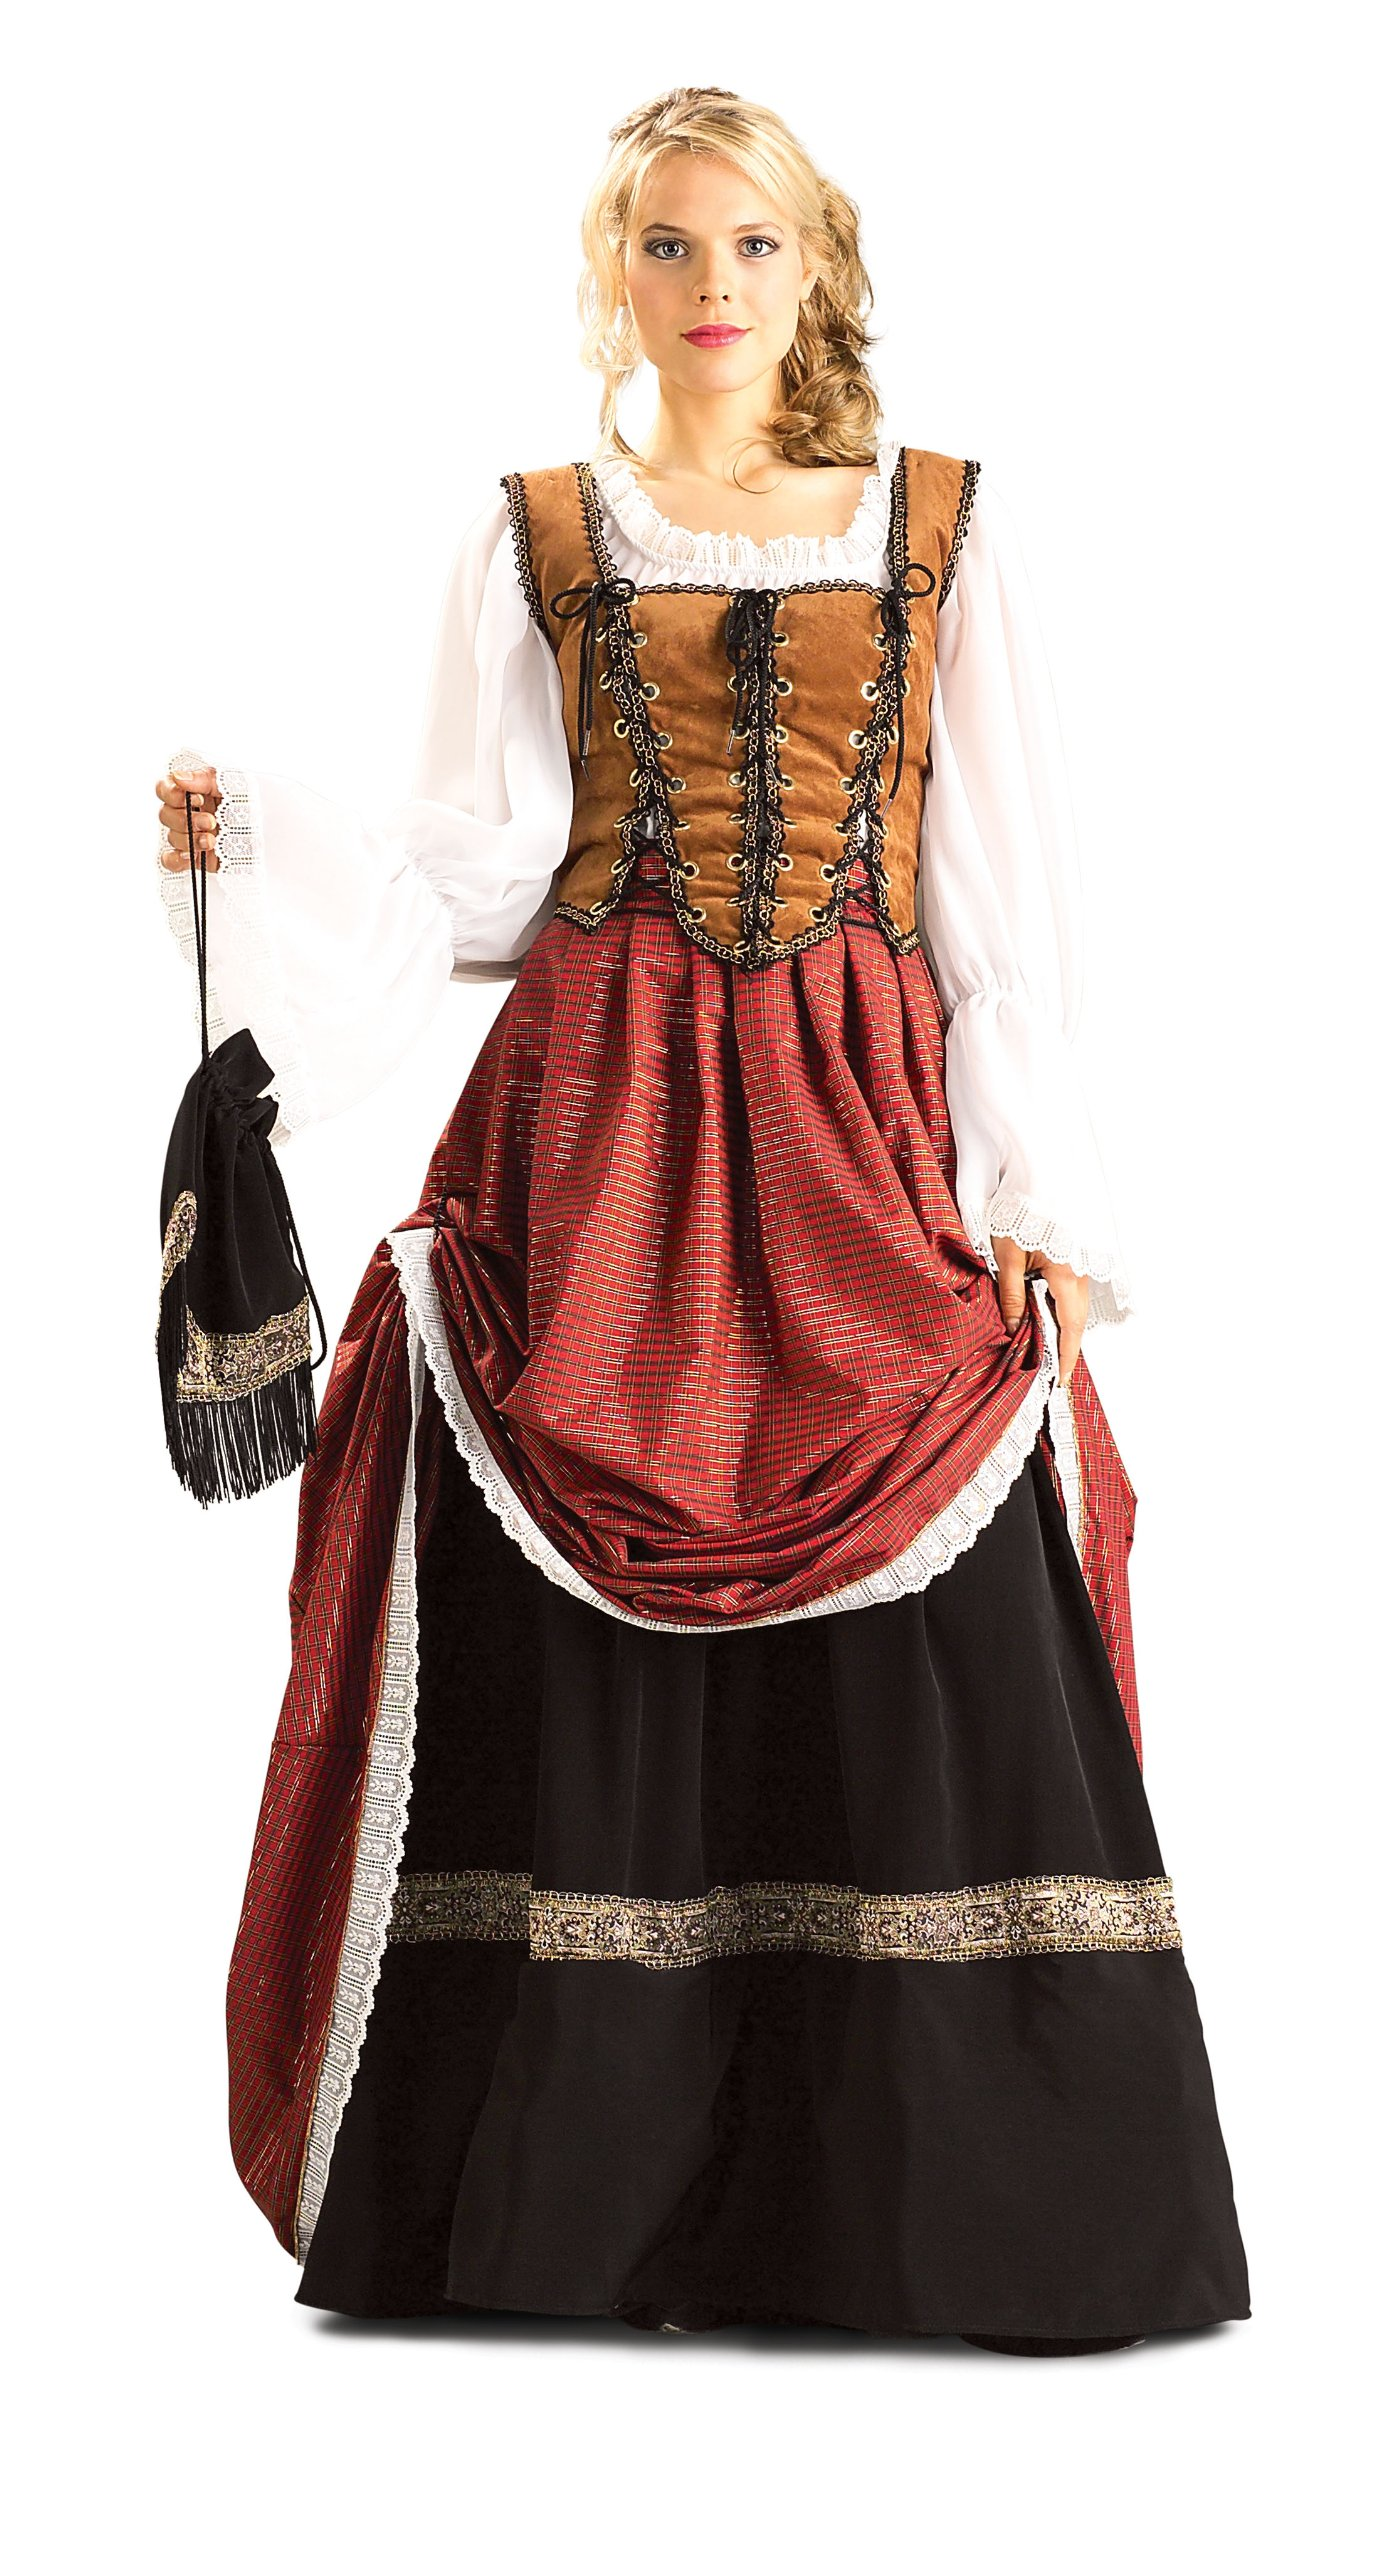 Rubie's Costume Grand Heritage Collection Deluxe Brigadoon Costume, Brown, Medium